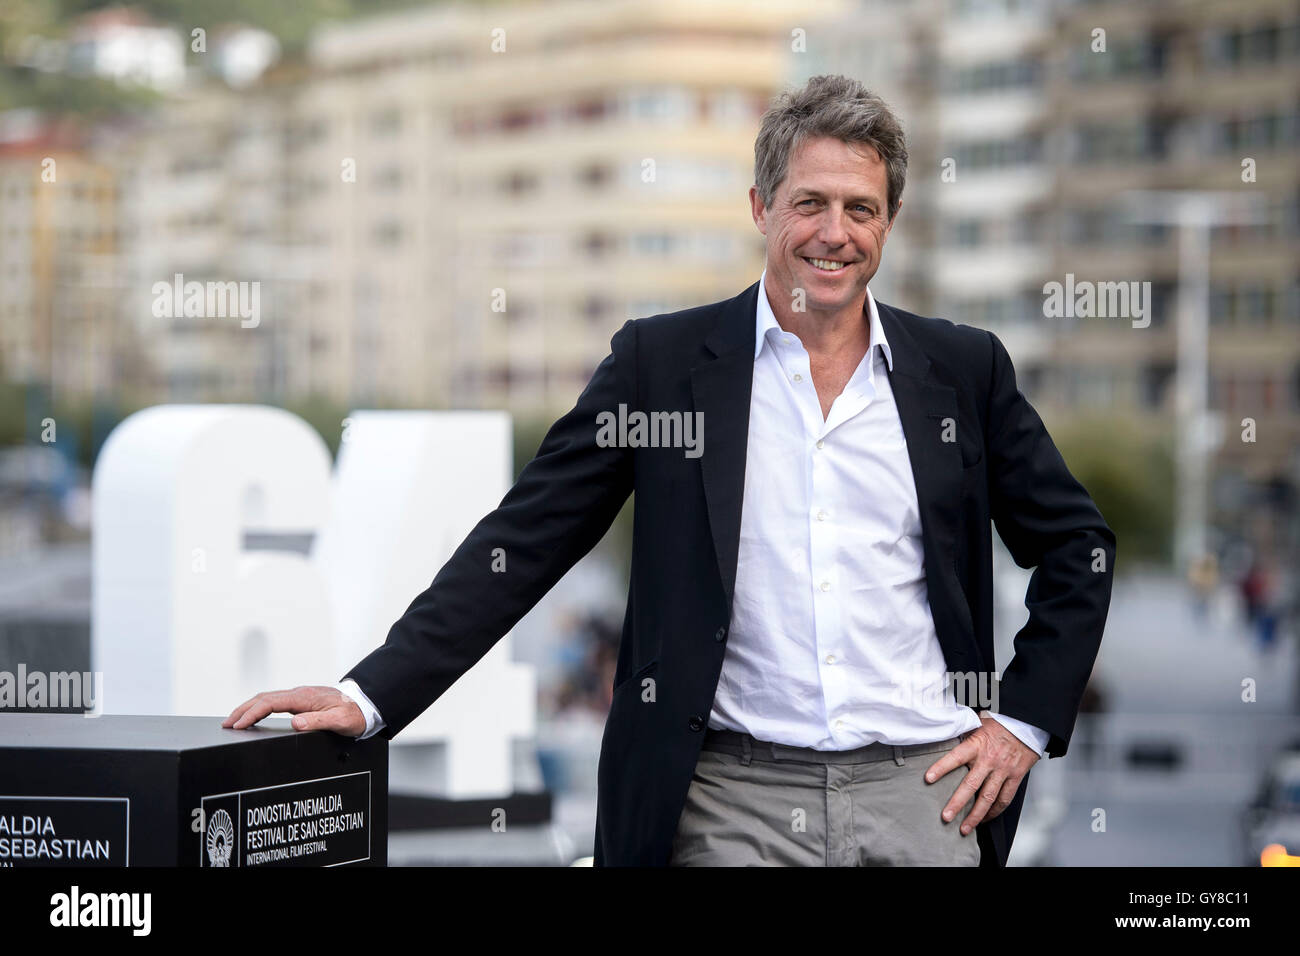 San Sebastian, Spain. 18th Sept, 2016. Actor Hugh Grant at photocall of 'Florence Foster Jenkins' during - Stock Image